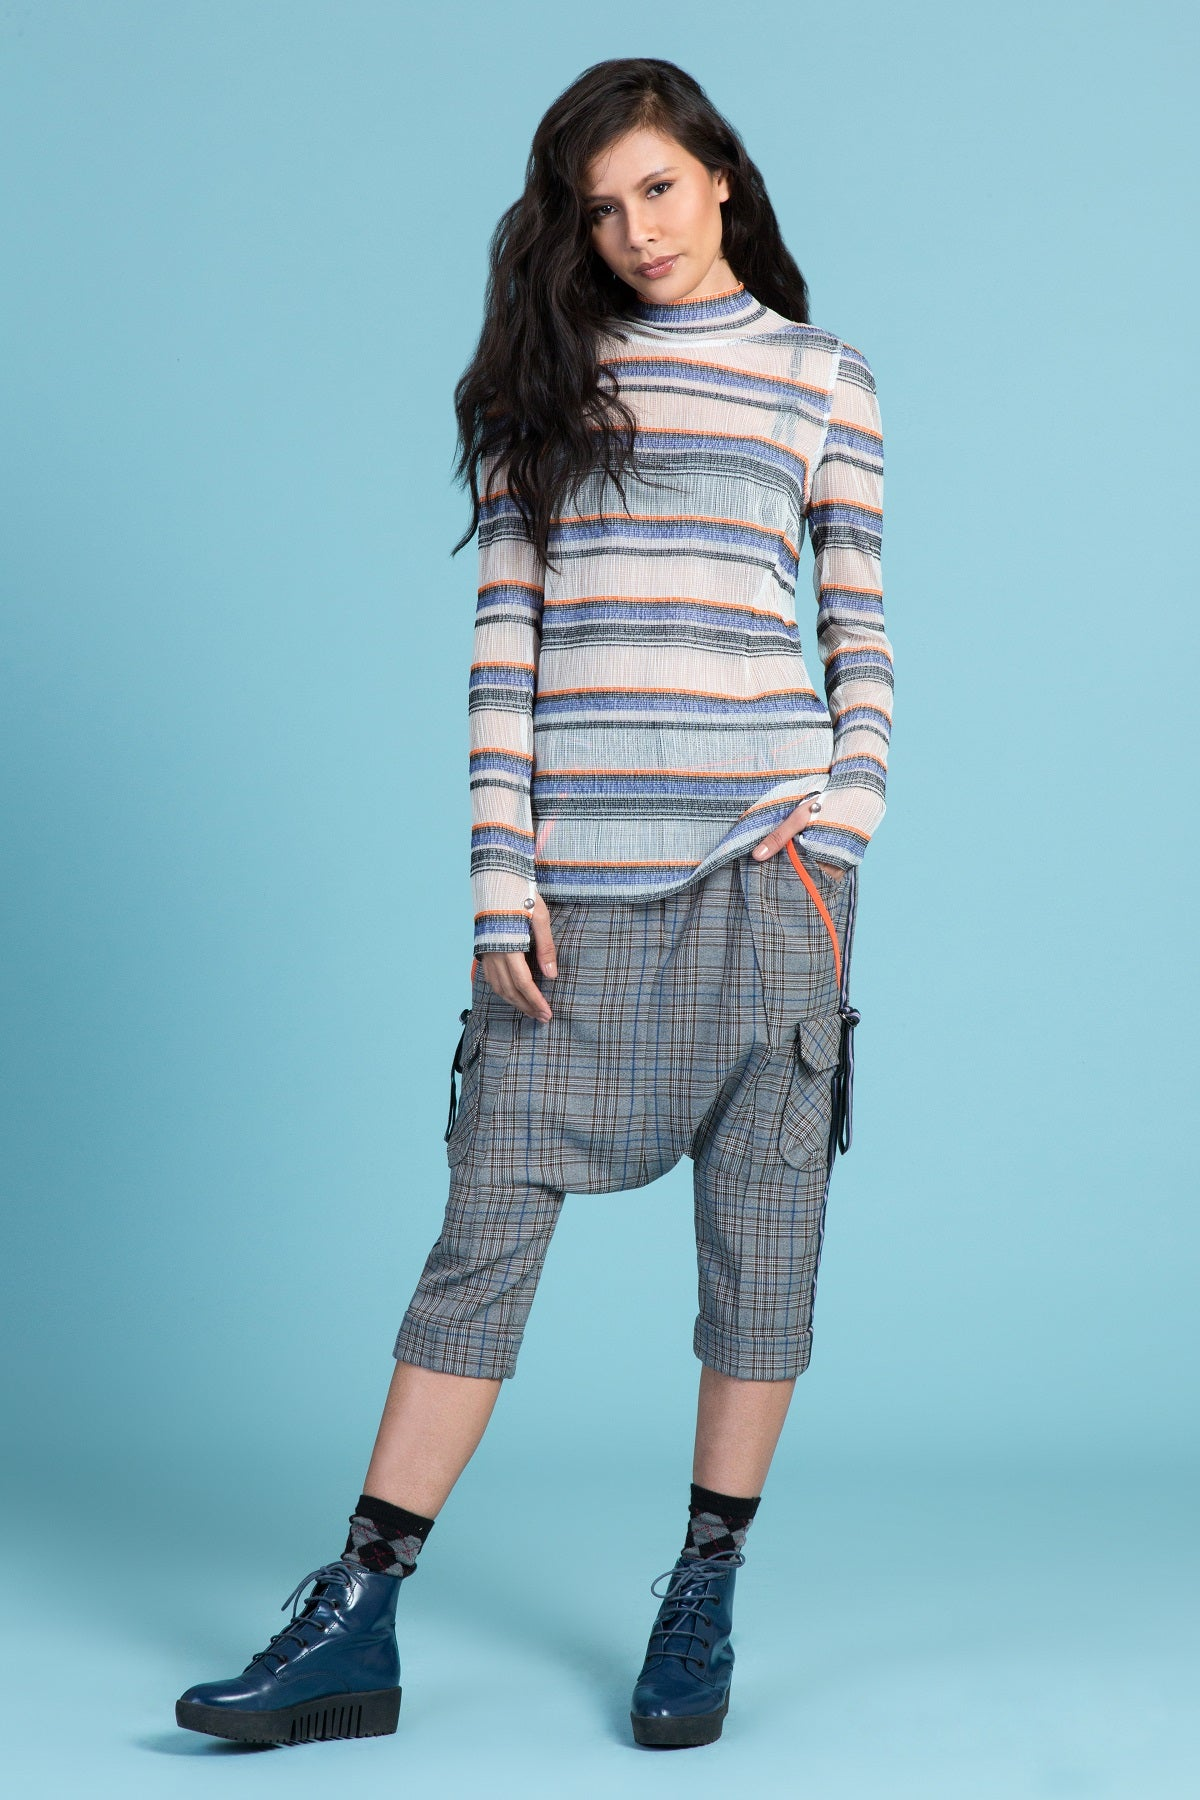 Montana Sky Sheer Stripe Turtleneck